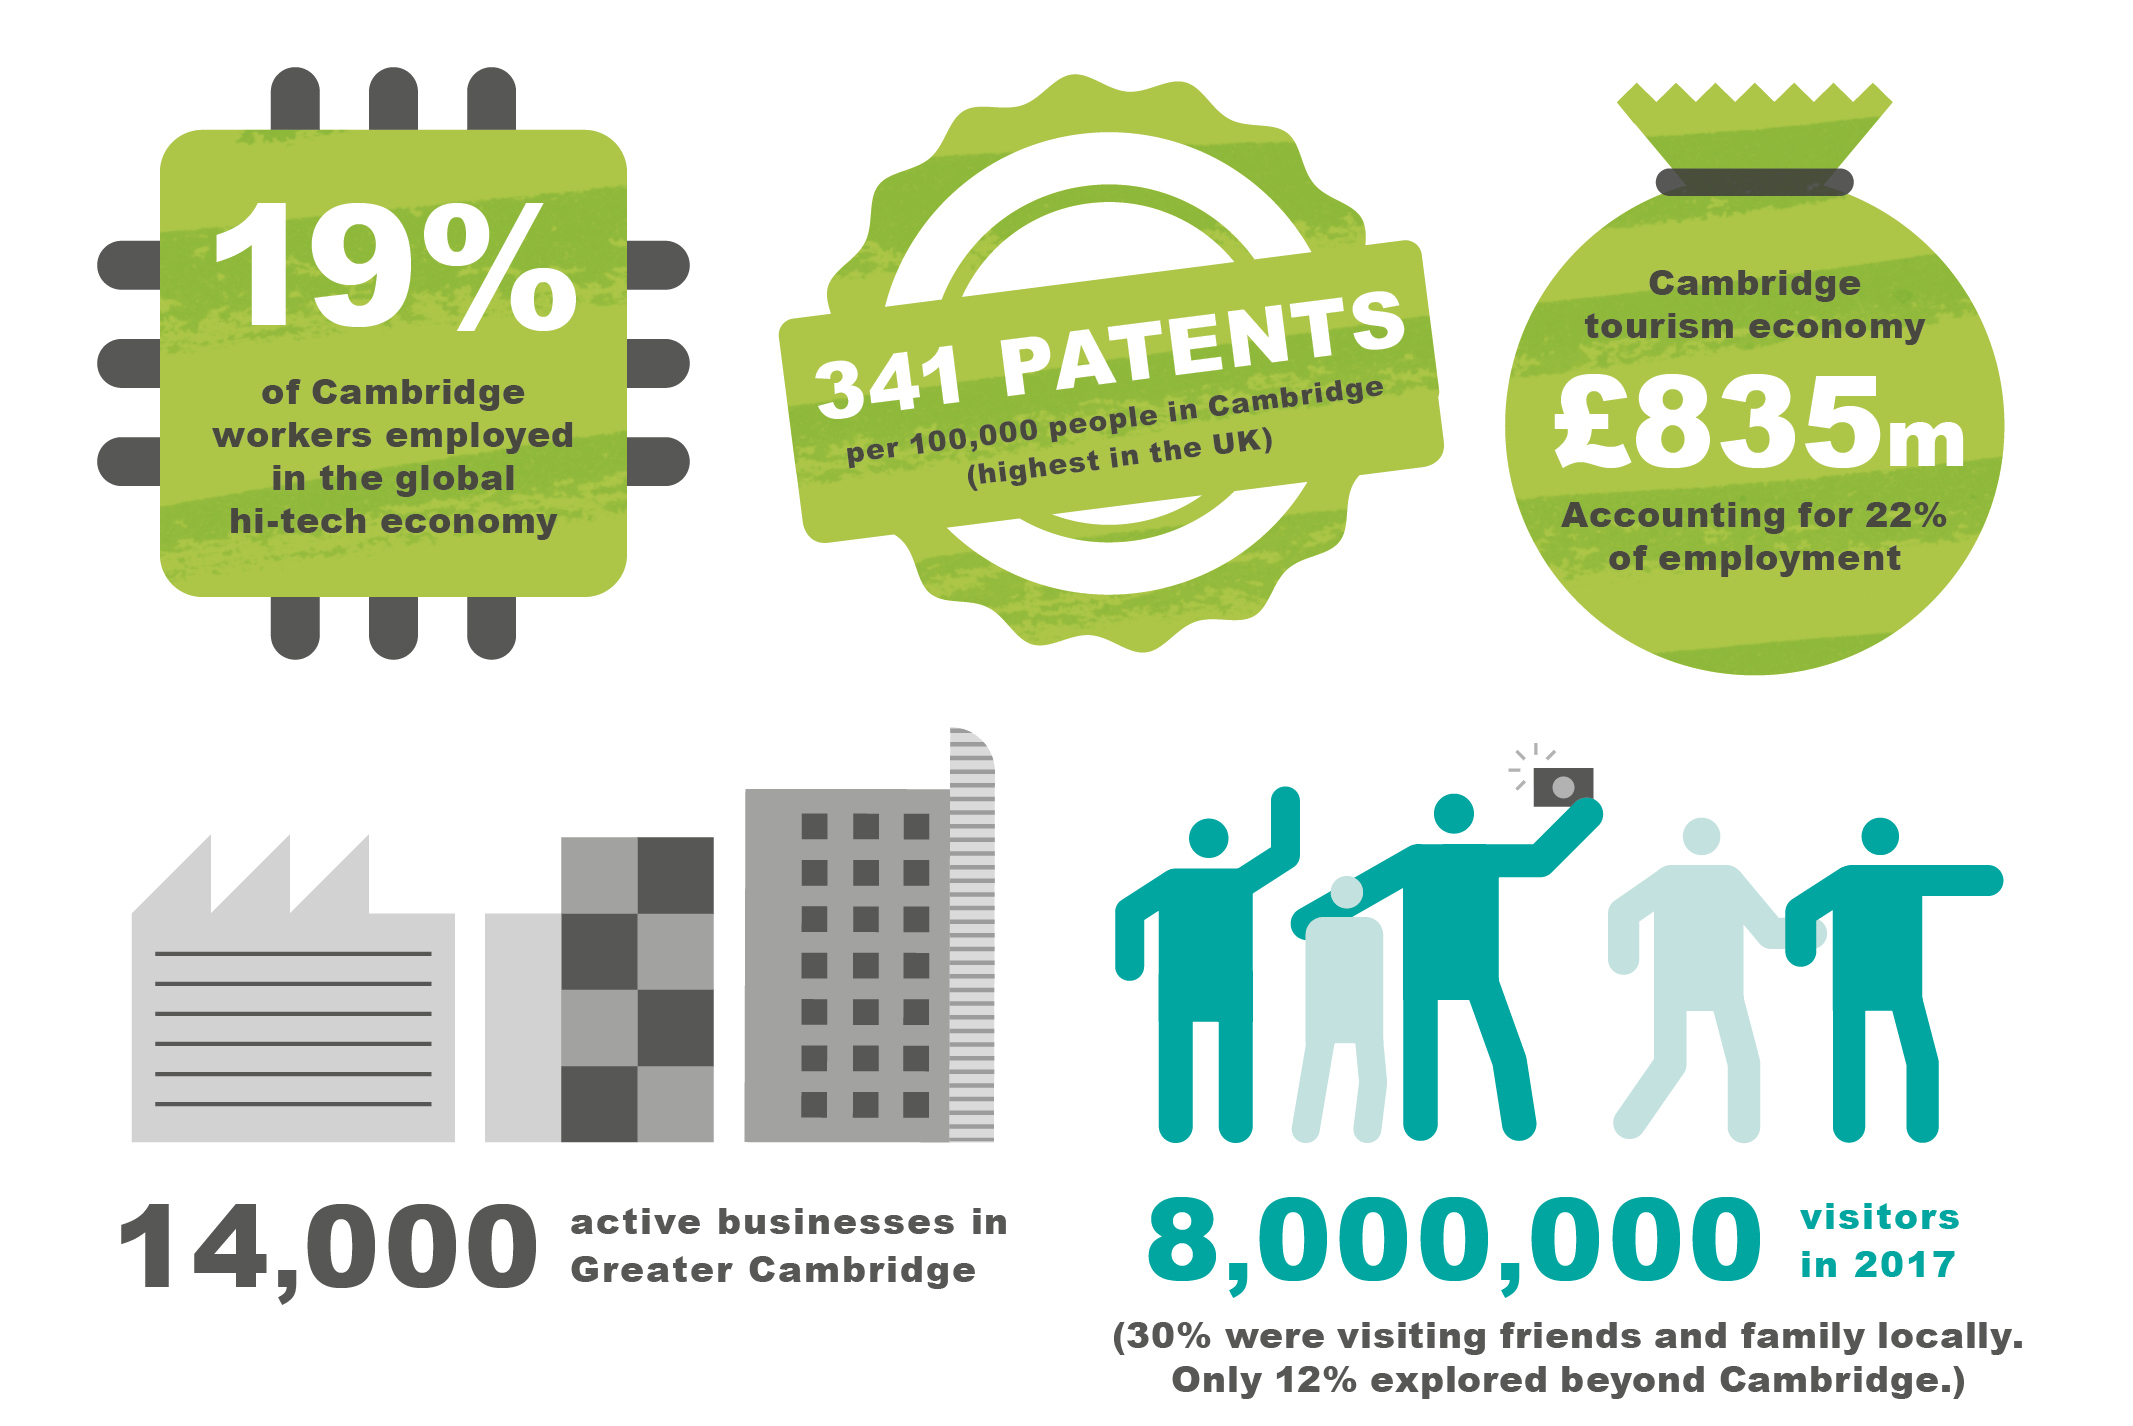 Infographic that shows that 19% of Cambridge workers are employed in the global hi-tech economy; there are 341 patents per 100,000 people in Cambridge which is the highest in the UK; the Cambridge tourism economy is worth £835m a year, and accounts for 22% of employment; there are 14,000 active businesses in Greater Cambridge    Low unemployment 2.9% in Cambridge, 2.2 % in South Cambs (compared to 4.1% nationally).  Income and employment: disparities between wards in the north and east of the city and rest of Greater Cambridge (Kings Hedges 4.8% unemployed, Cambridge 2.7% in 2011, 8m people visited Cambridge (30% visiting friends and family locally), only 12% explore beyond Cambridge.